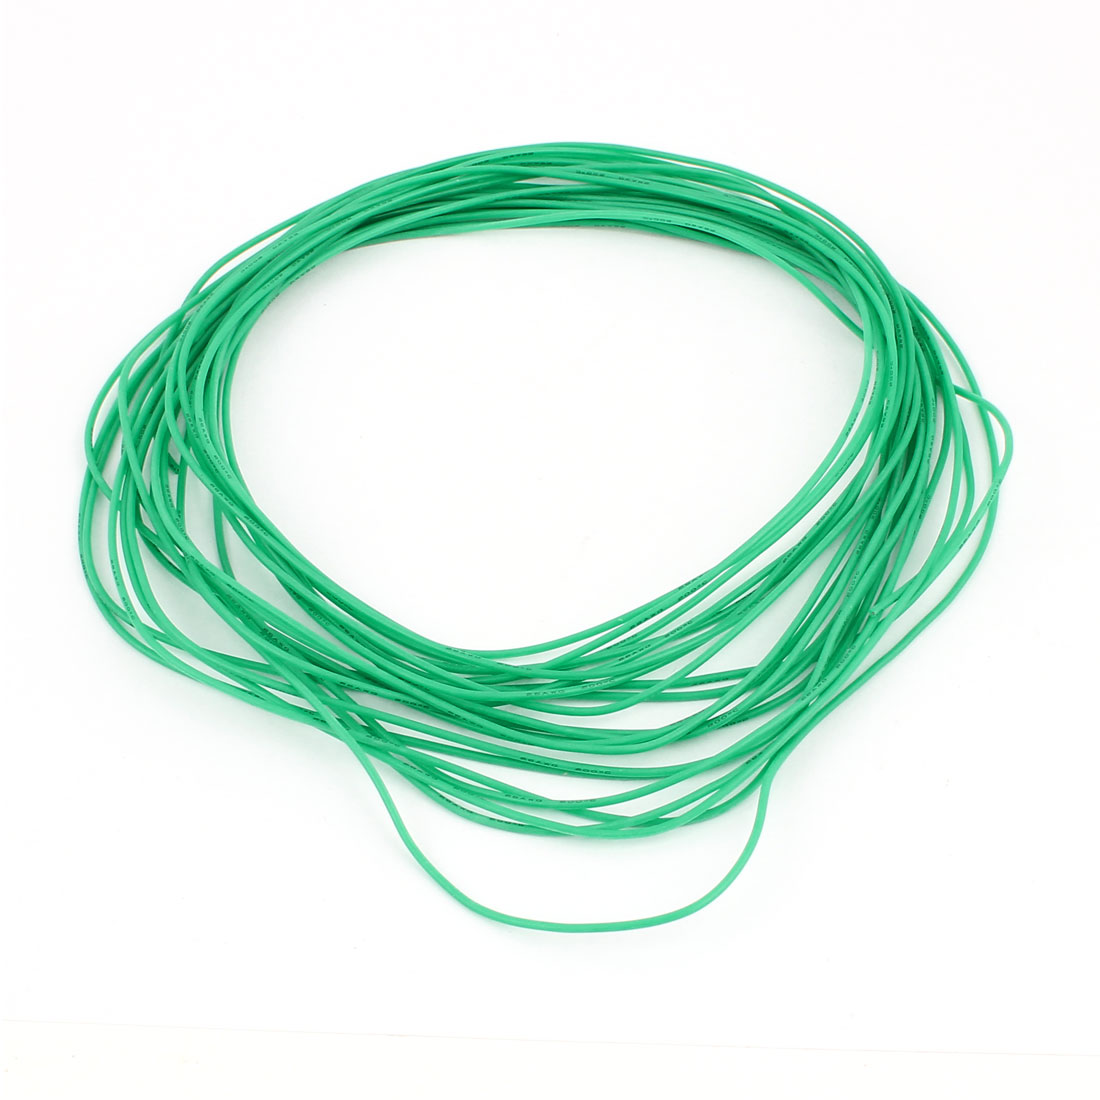 10M 26AWG Electric Copper Core Flexible Silicone Wire Cable Green